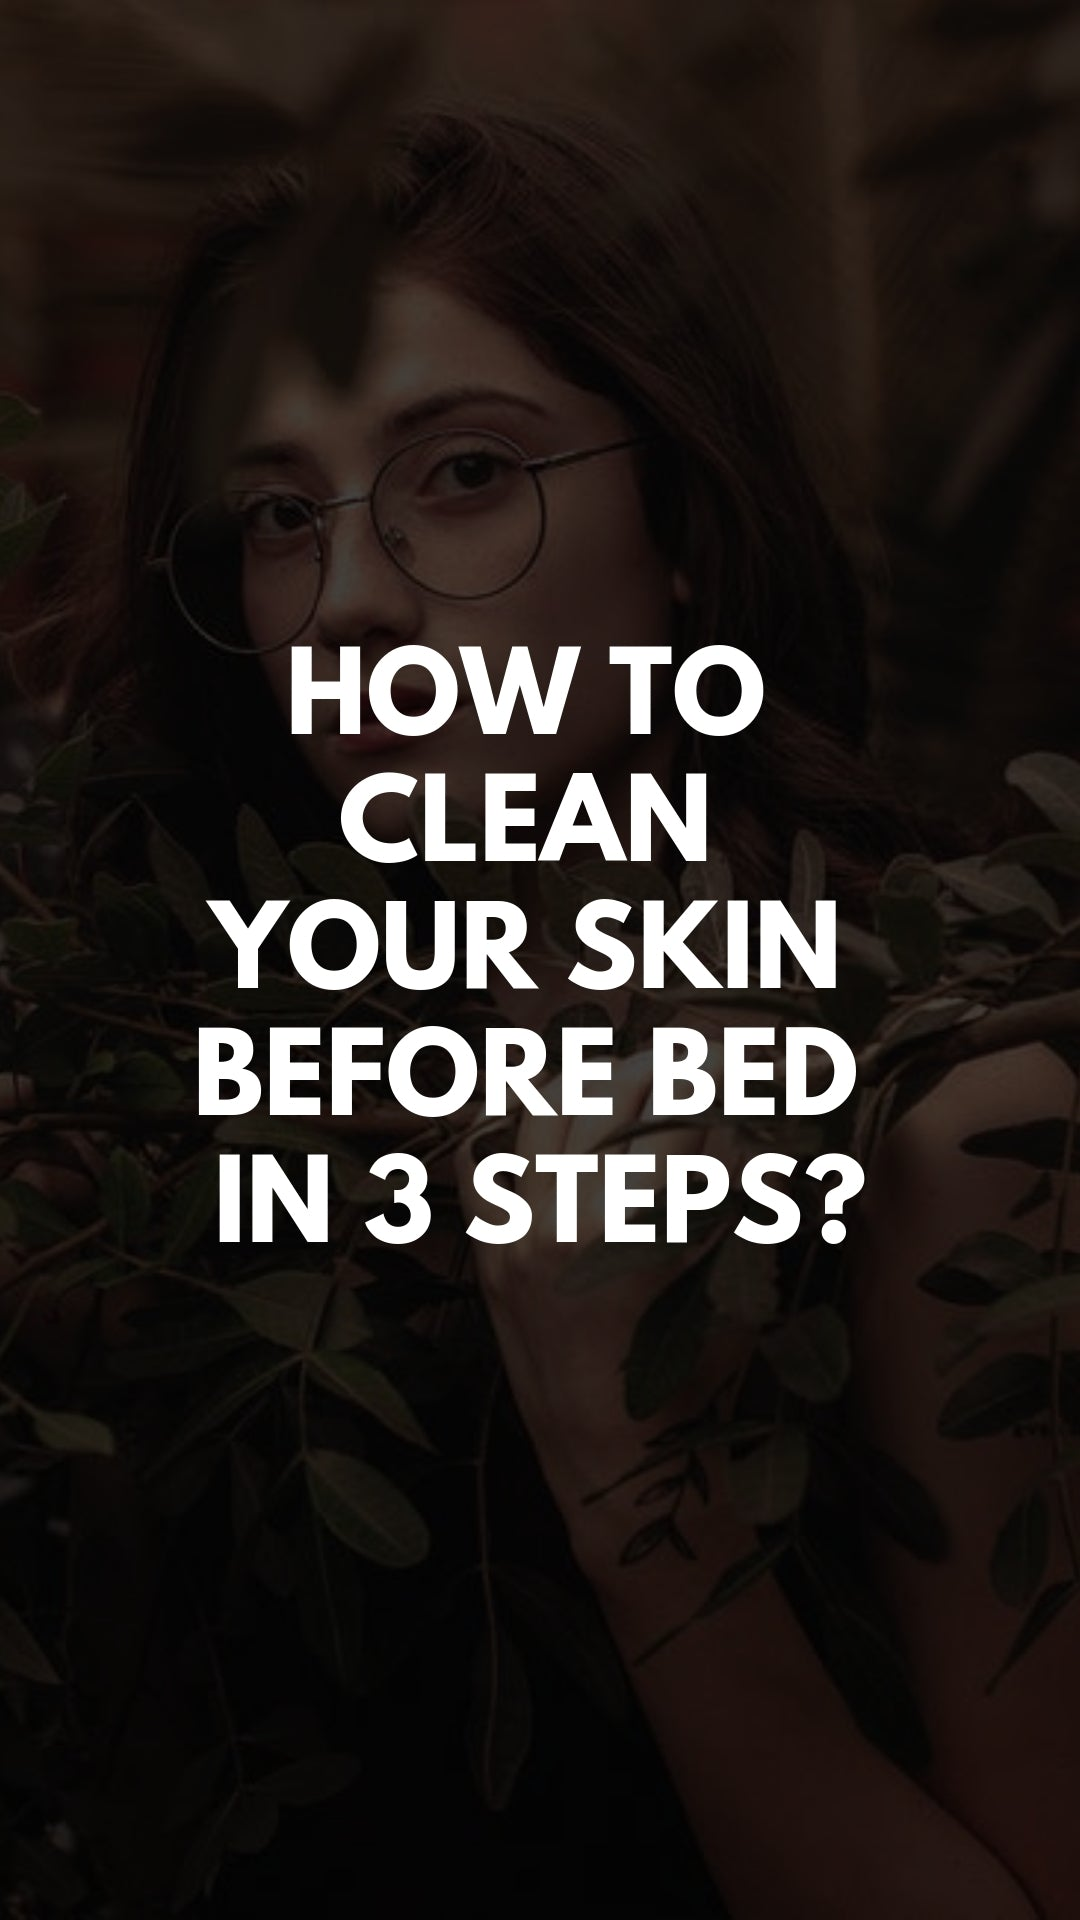 How to Clean Your Skin Before Bed In 3 Steps?